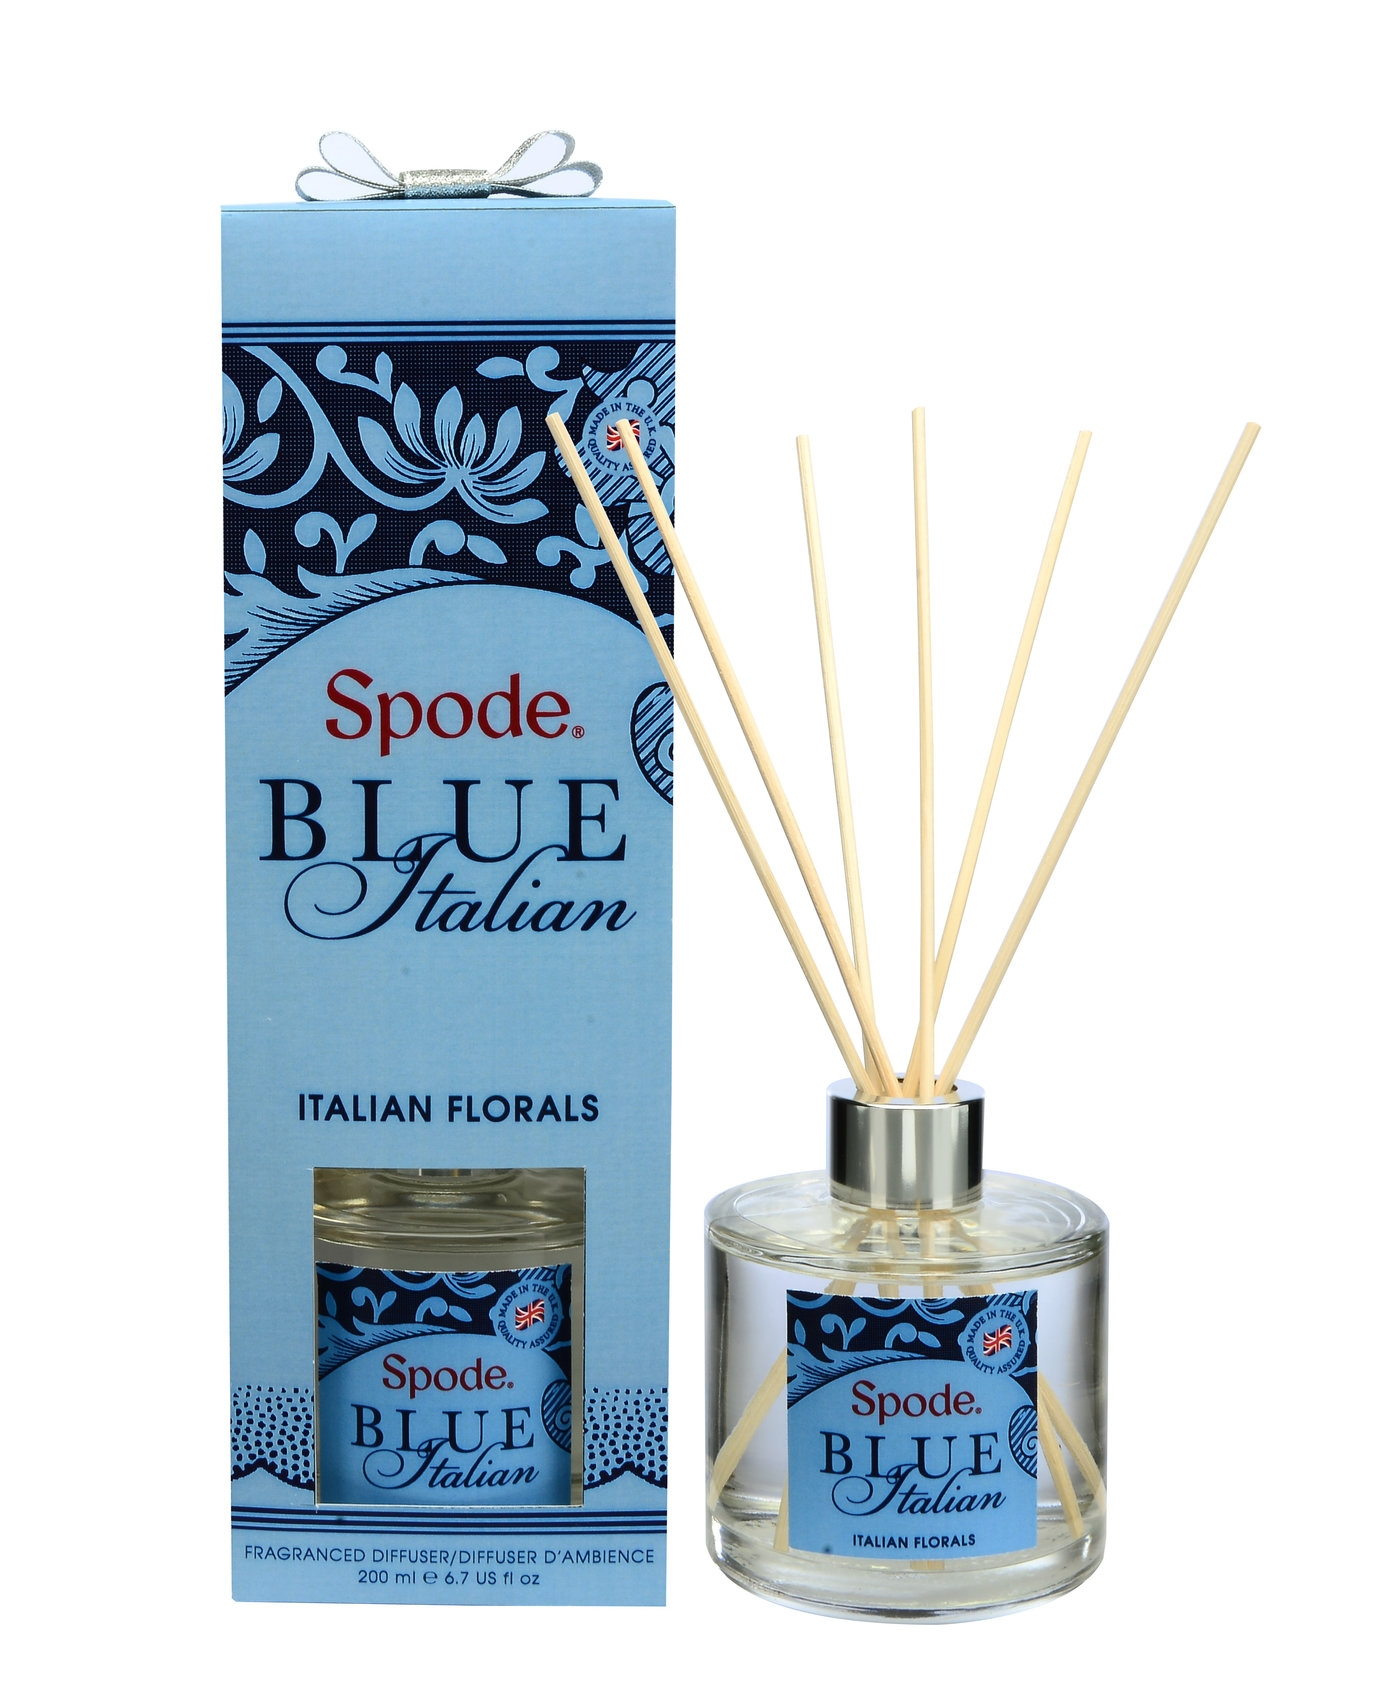 Spode Blue Italian Home Fragrance